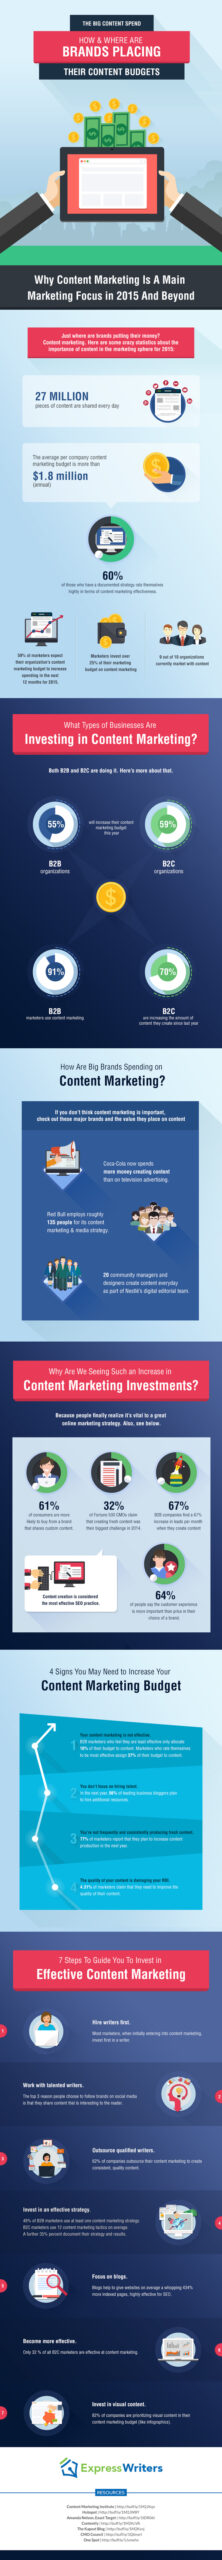 Infografica sui numeri del Content Marketing